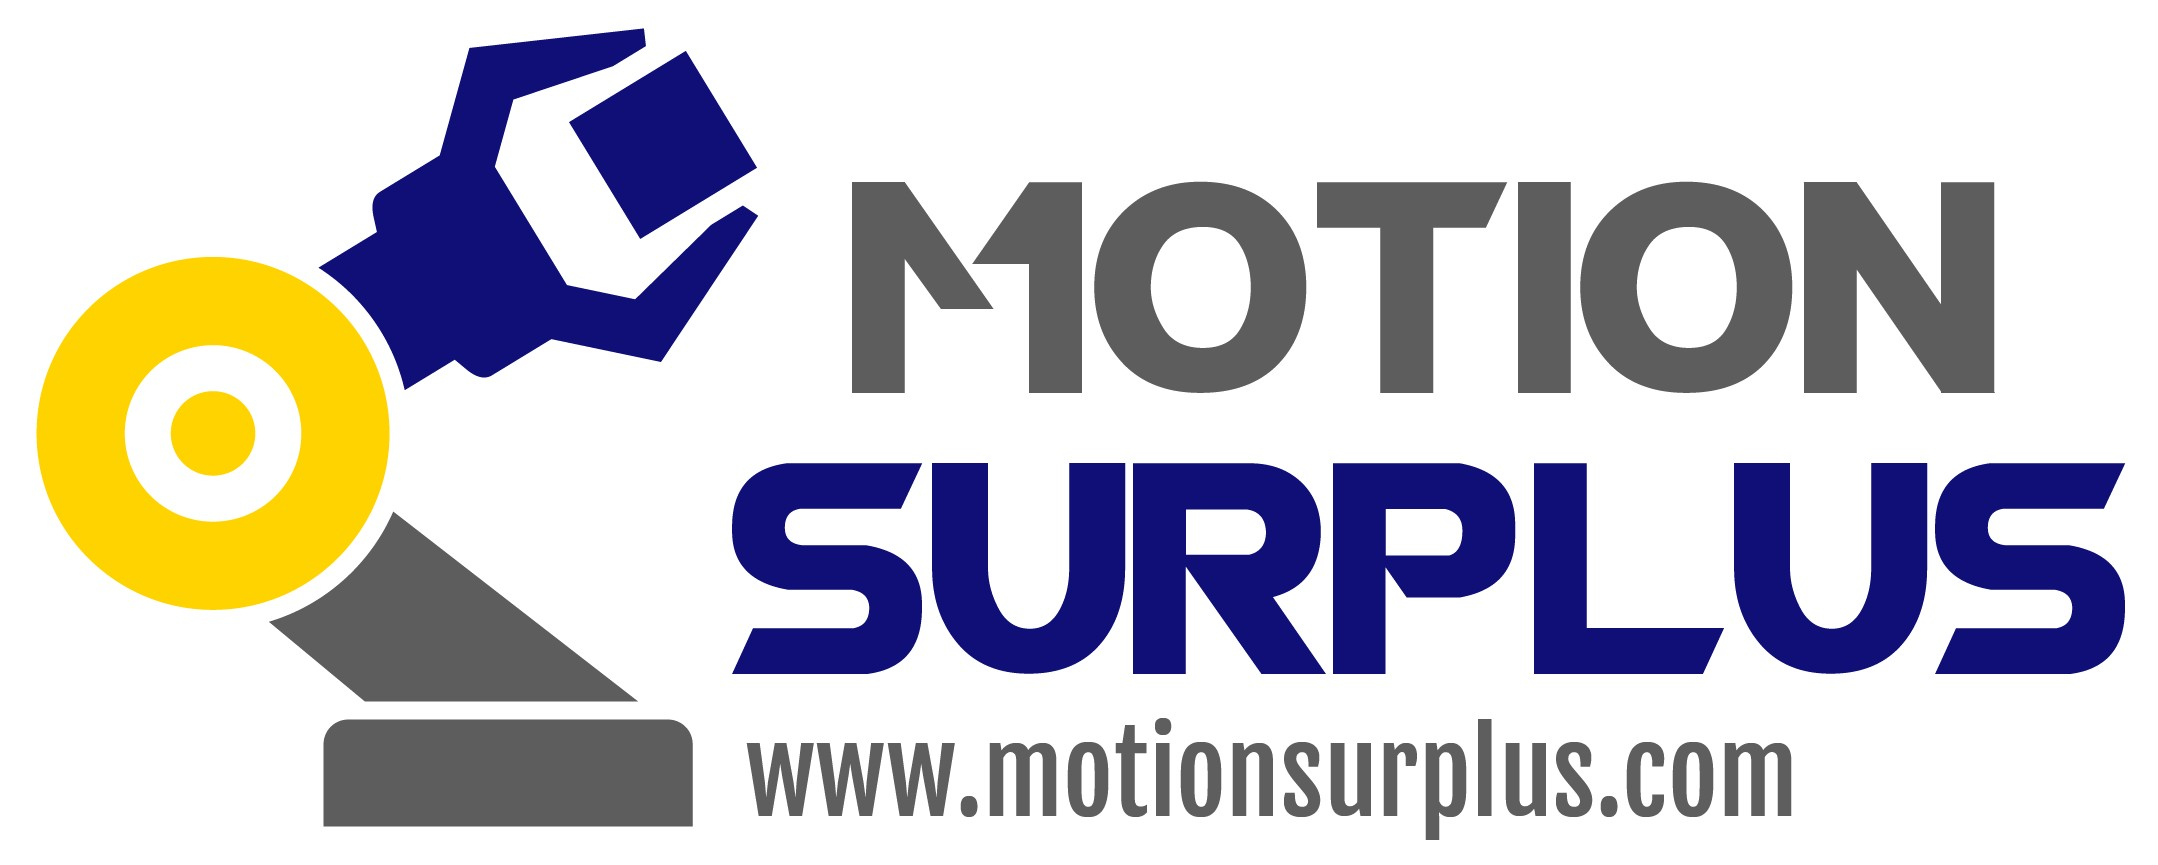 MotionSurplus